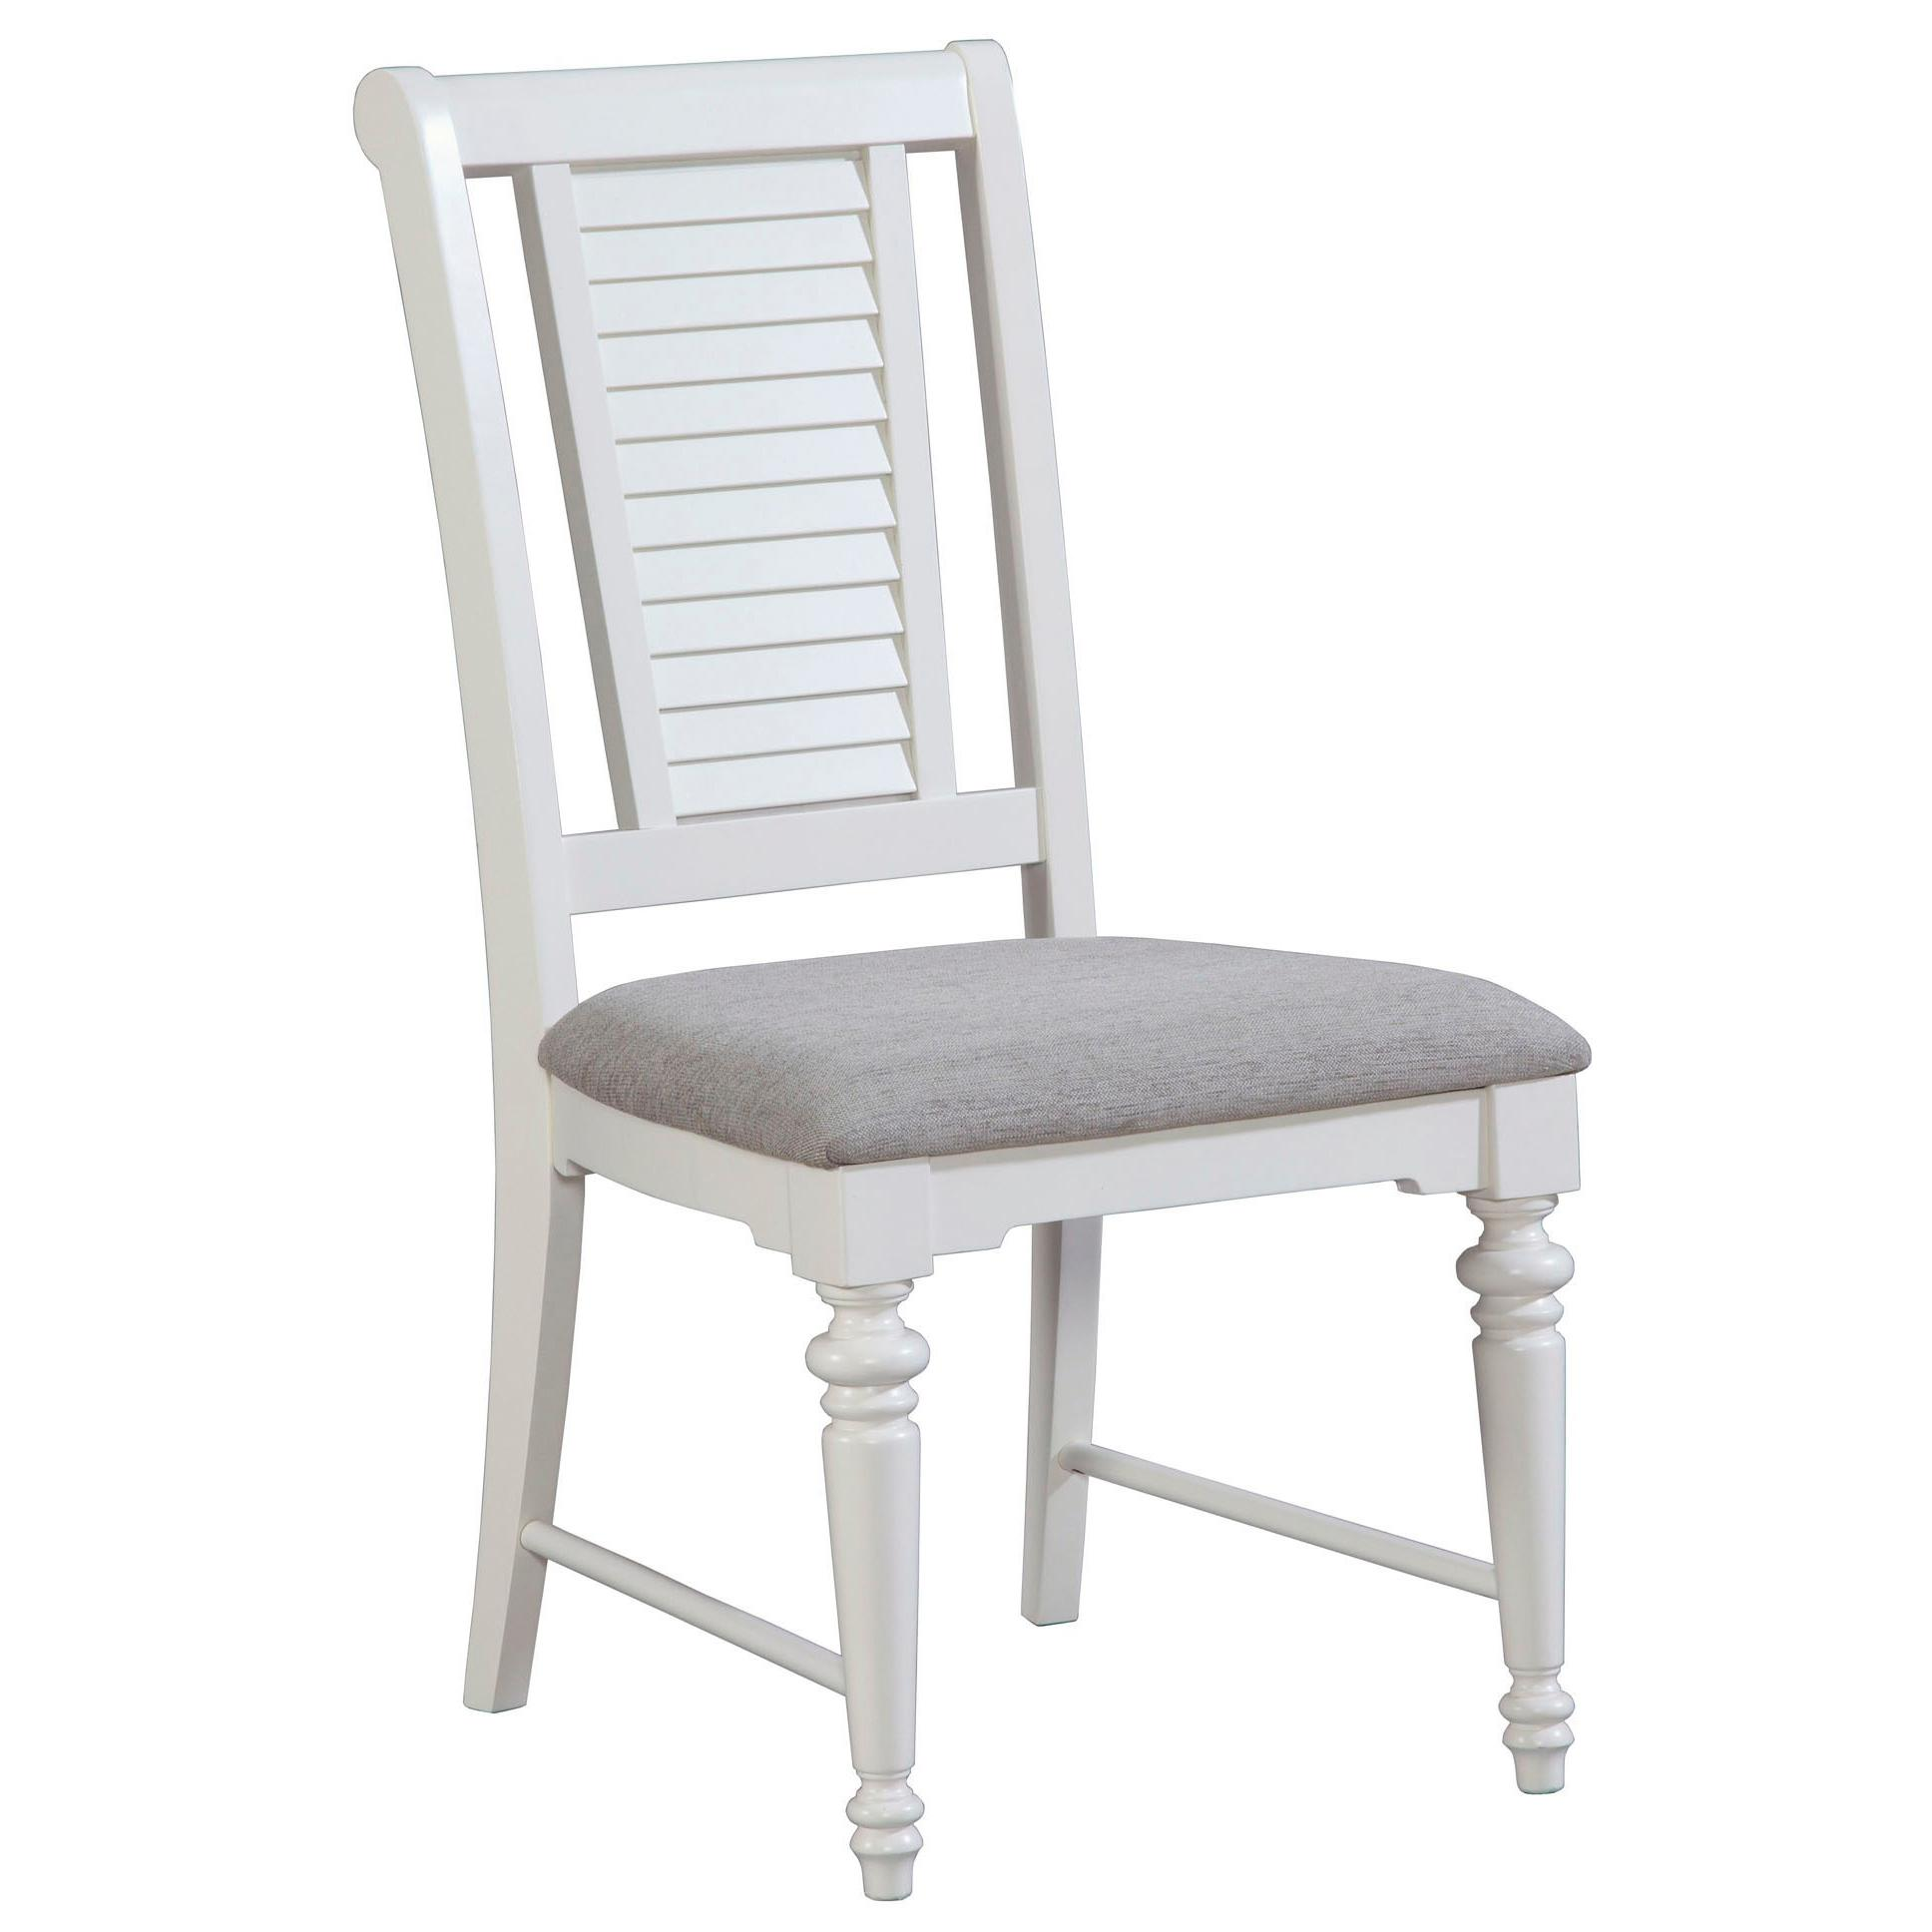 Broyhill Furniture Seabrooke Upholstered Dining Side Chair - Item Number: 4471-581